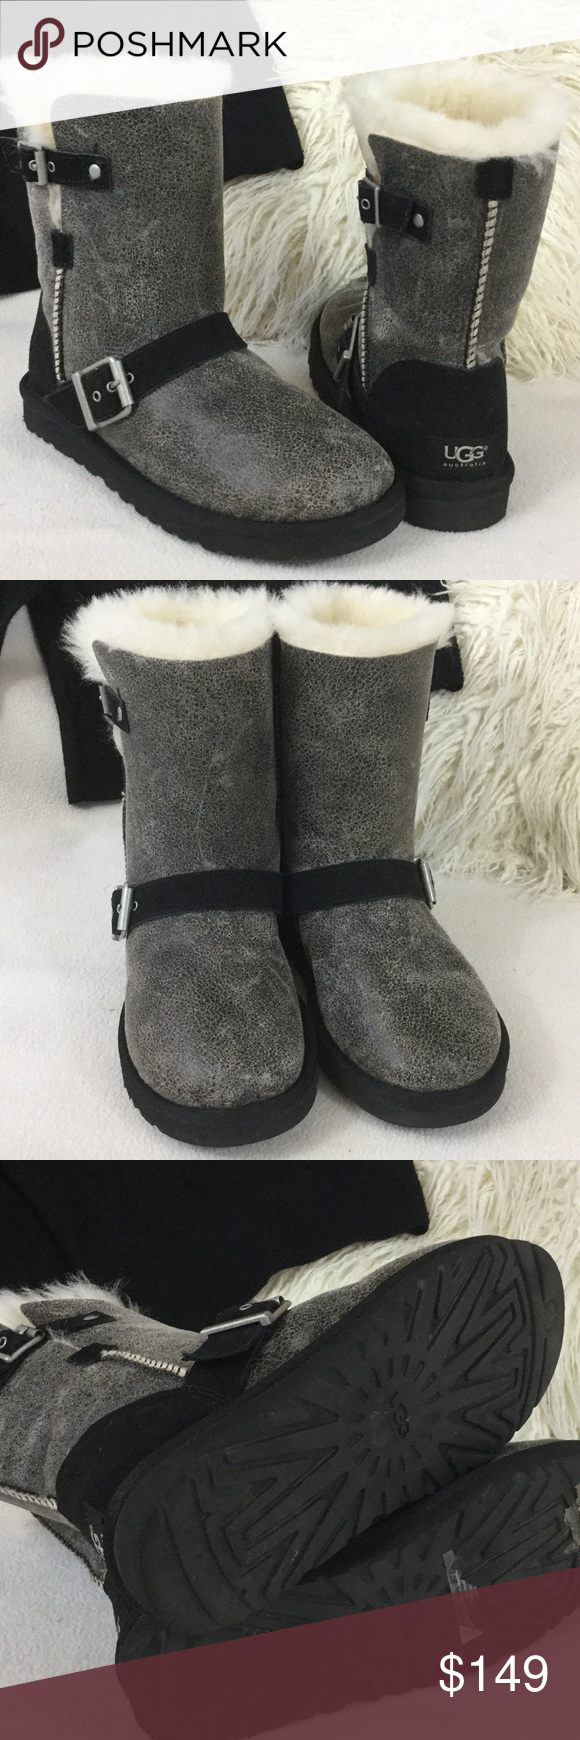 fc9827eab2a UGG Like New crackle leather buckle boots UGG black crackle boots ...